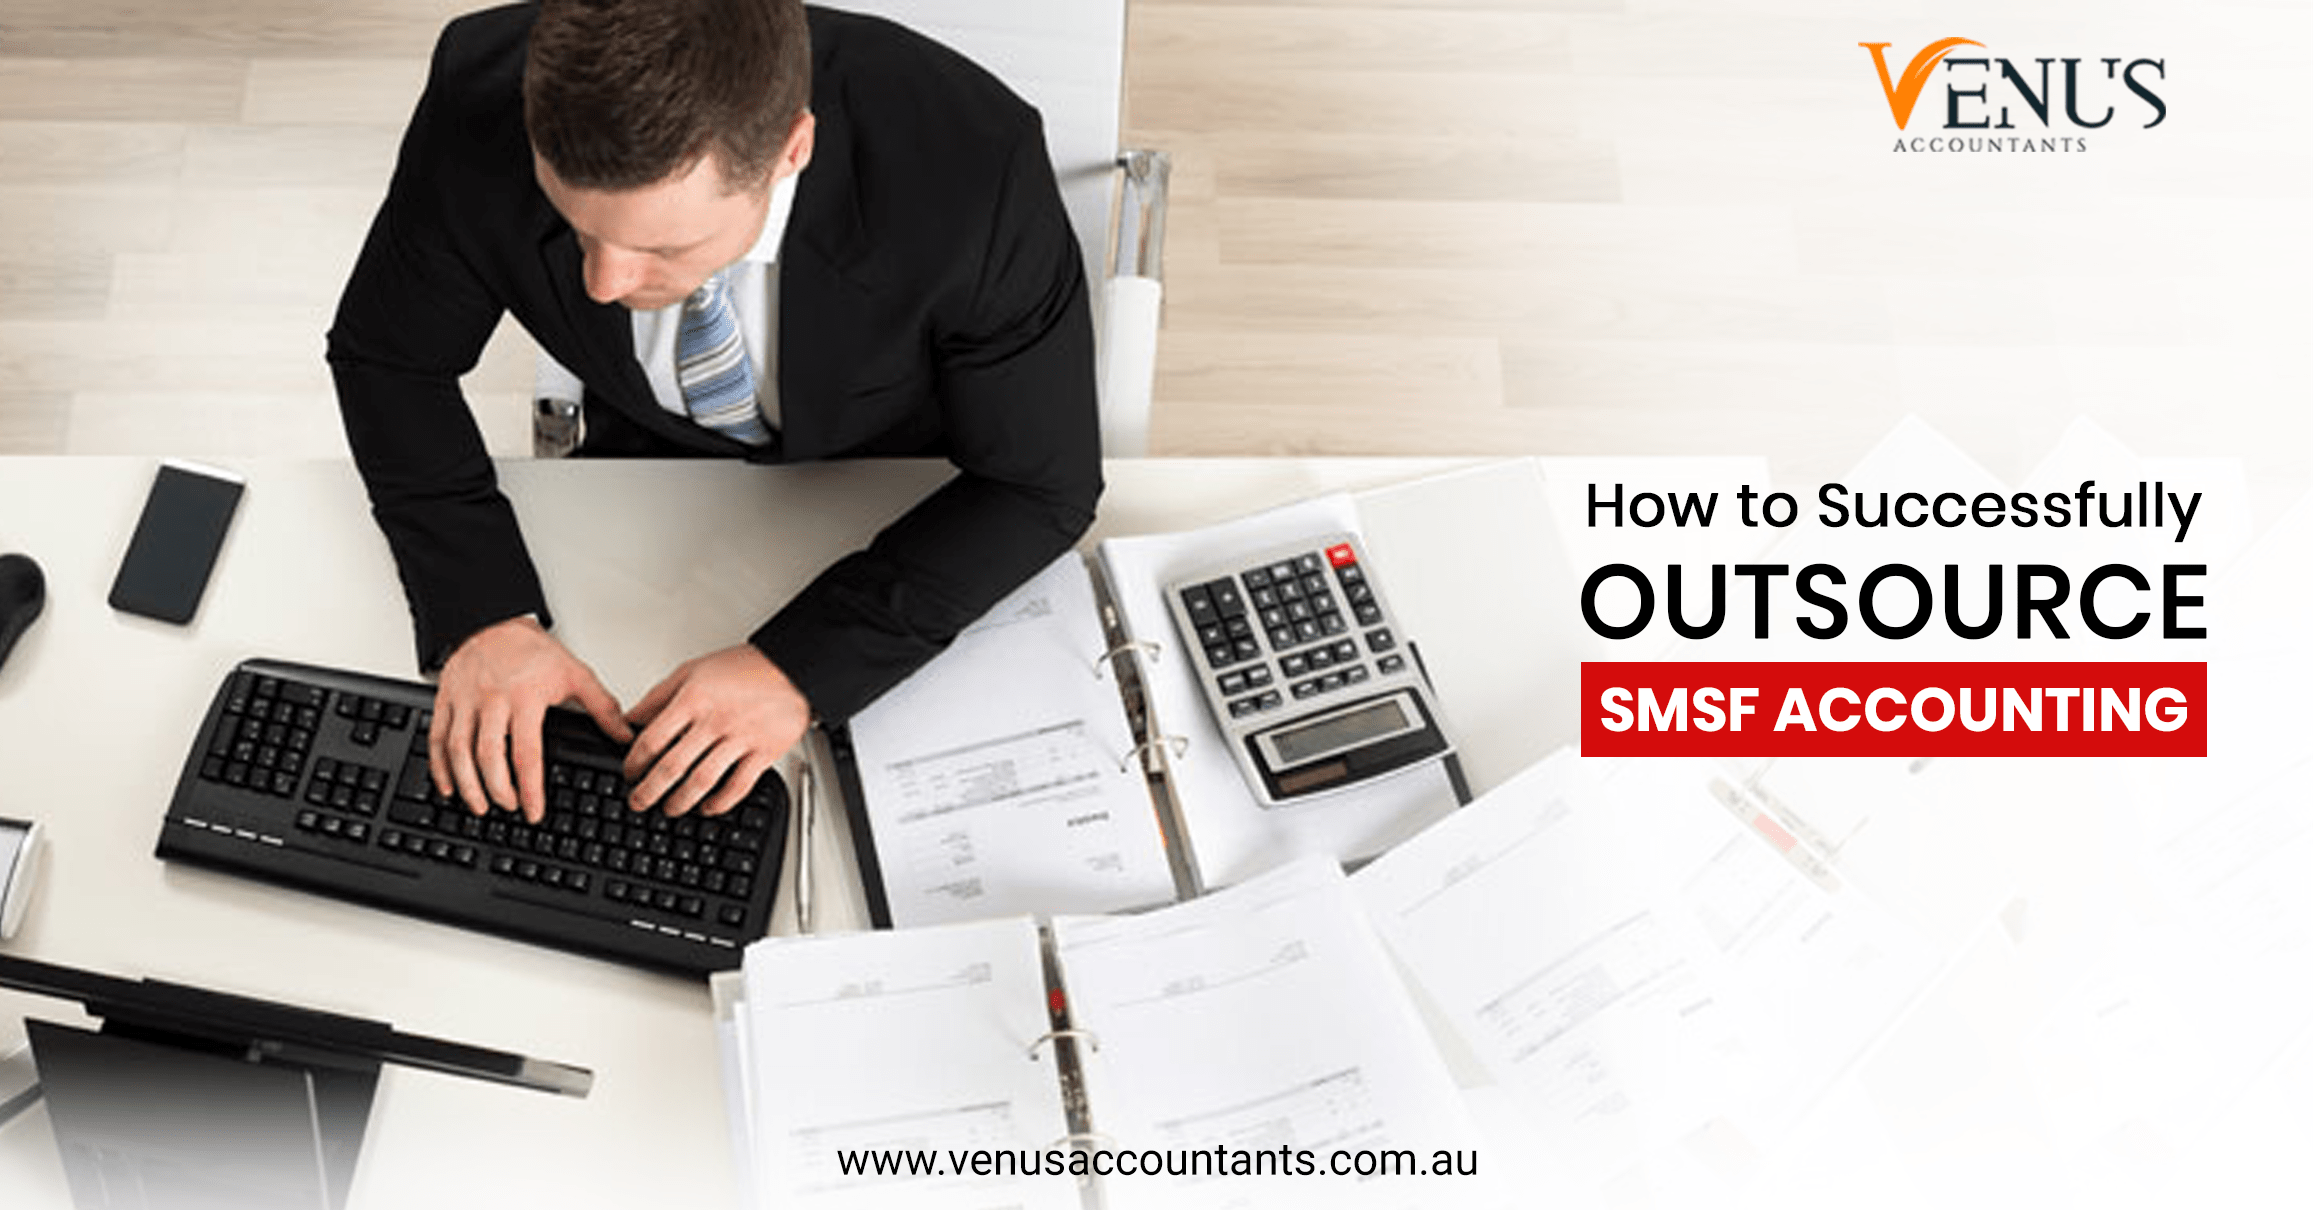 Outsource SMSF Accounting Venus Accountants